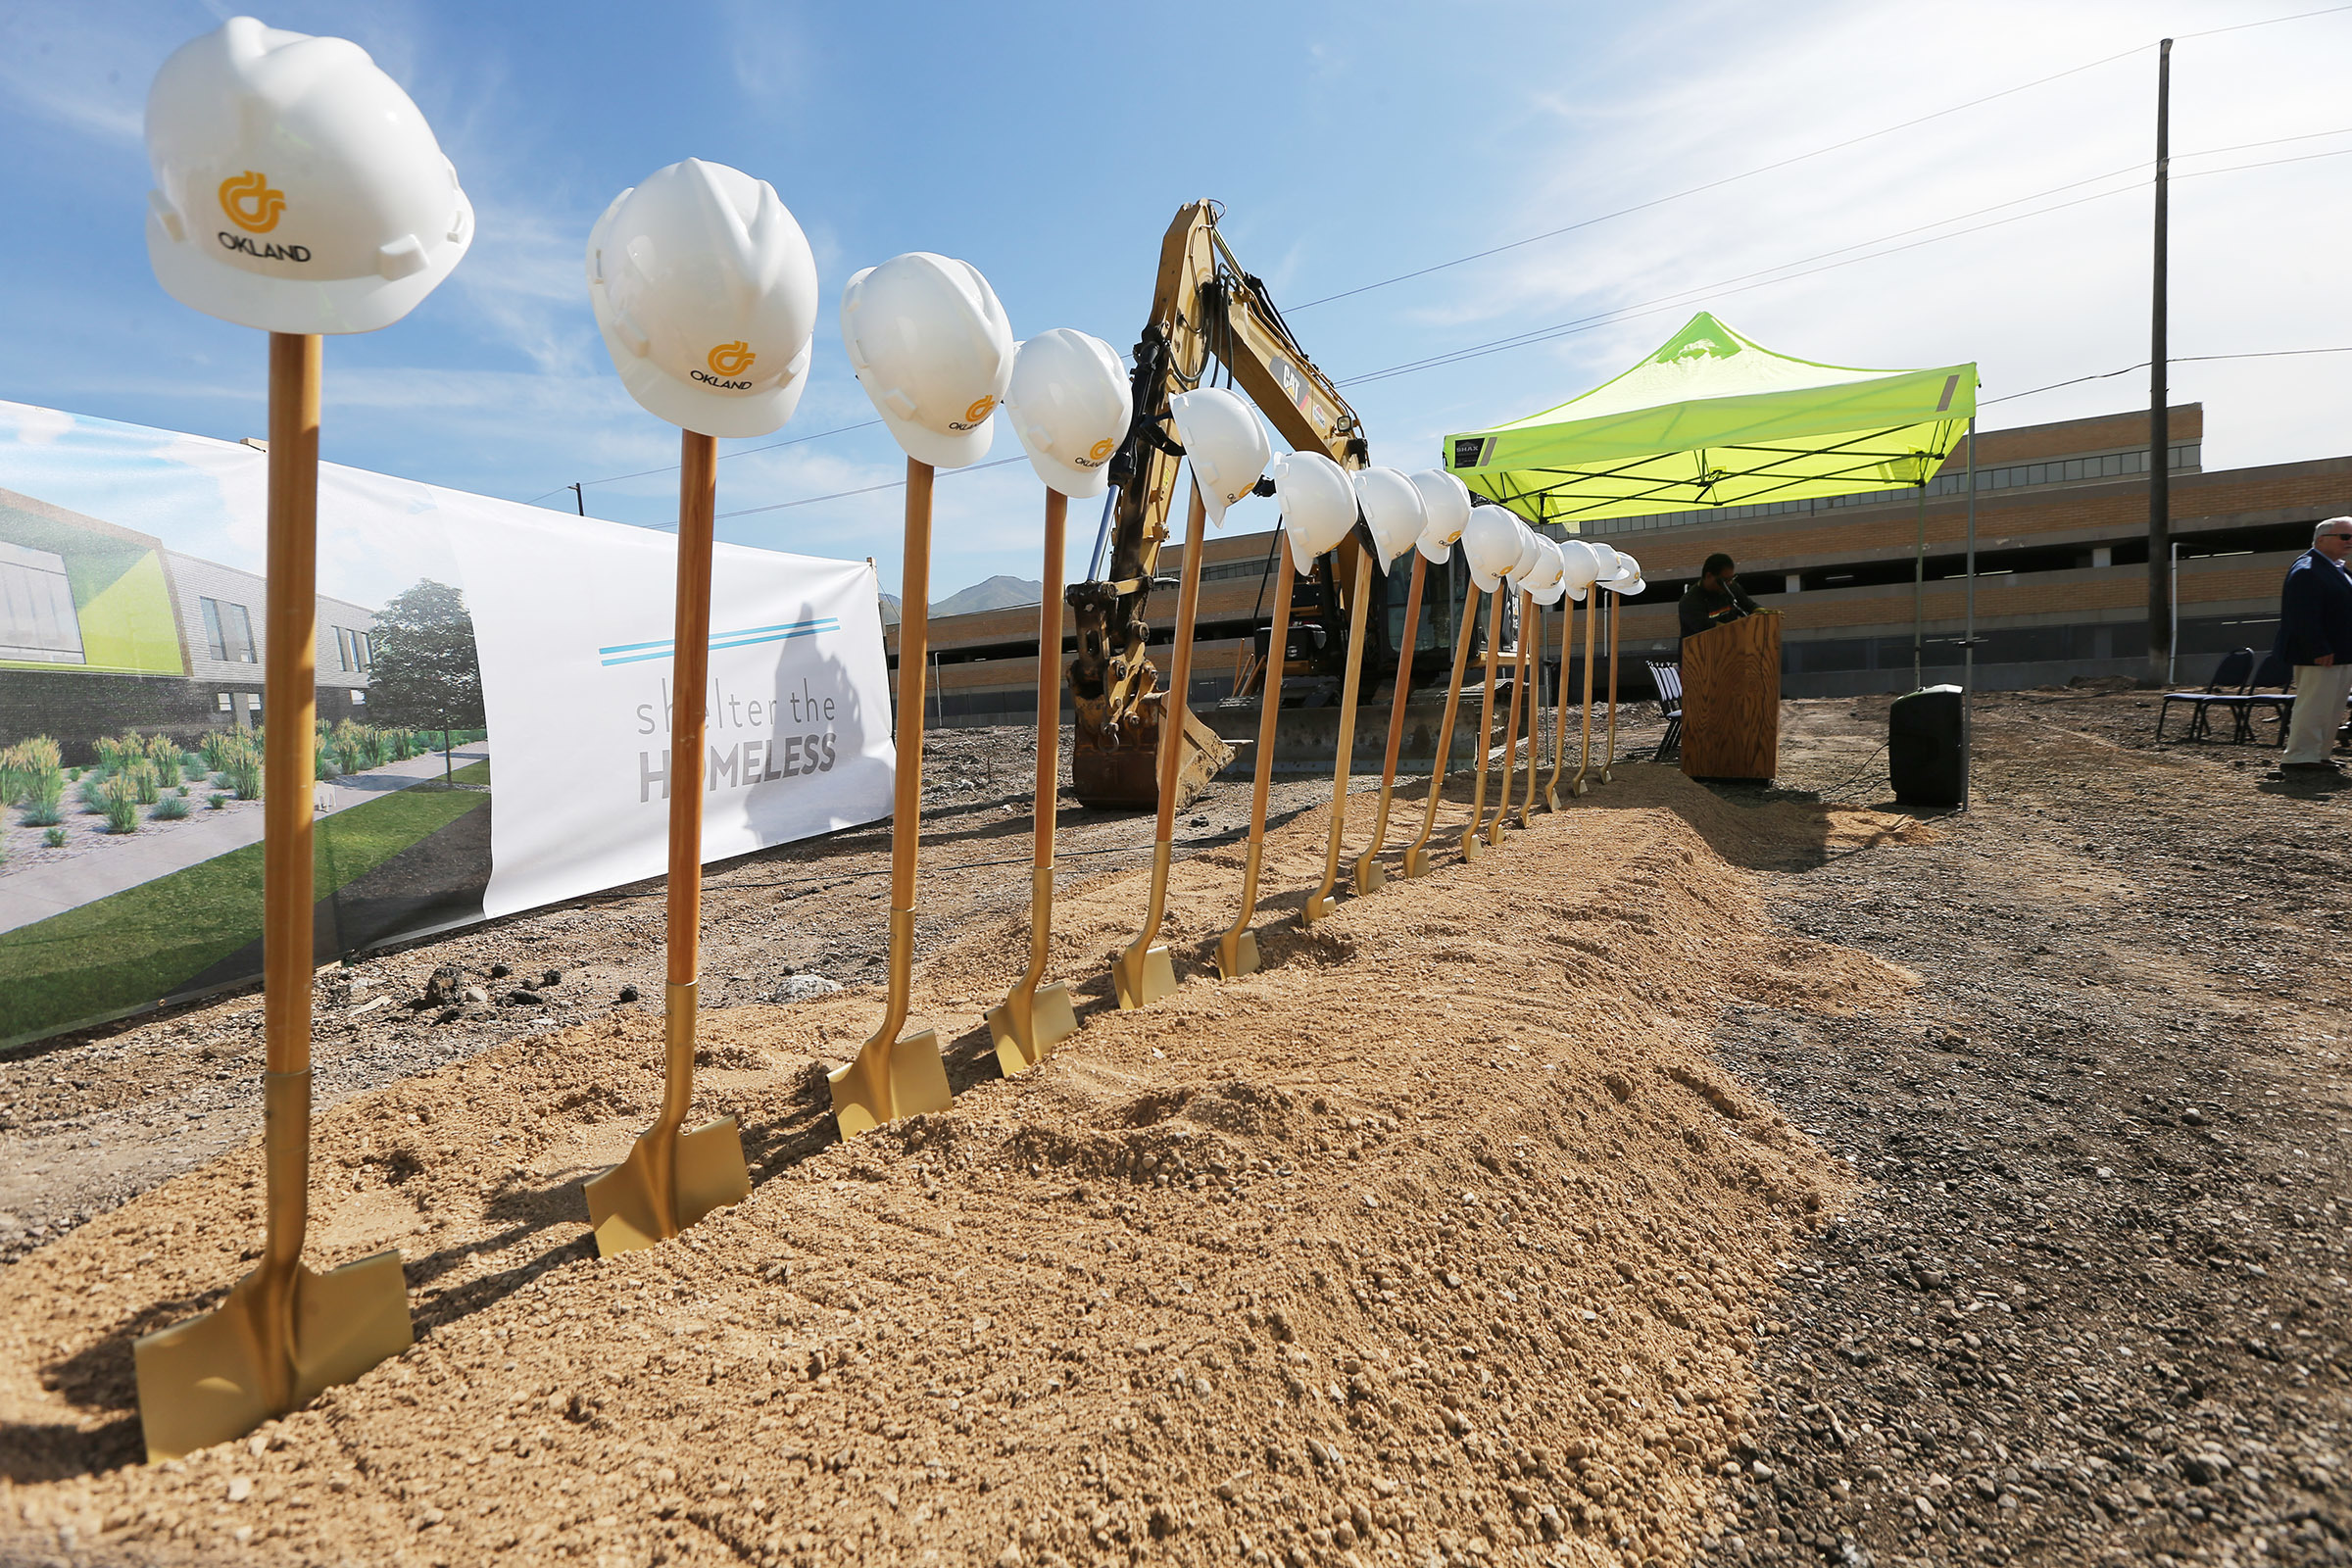 Space of hope': Officials break ground on 1 of 3 new